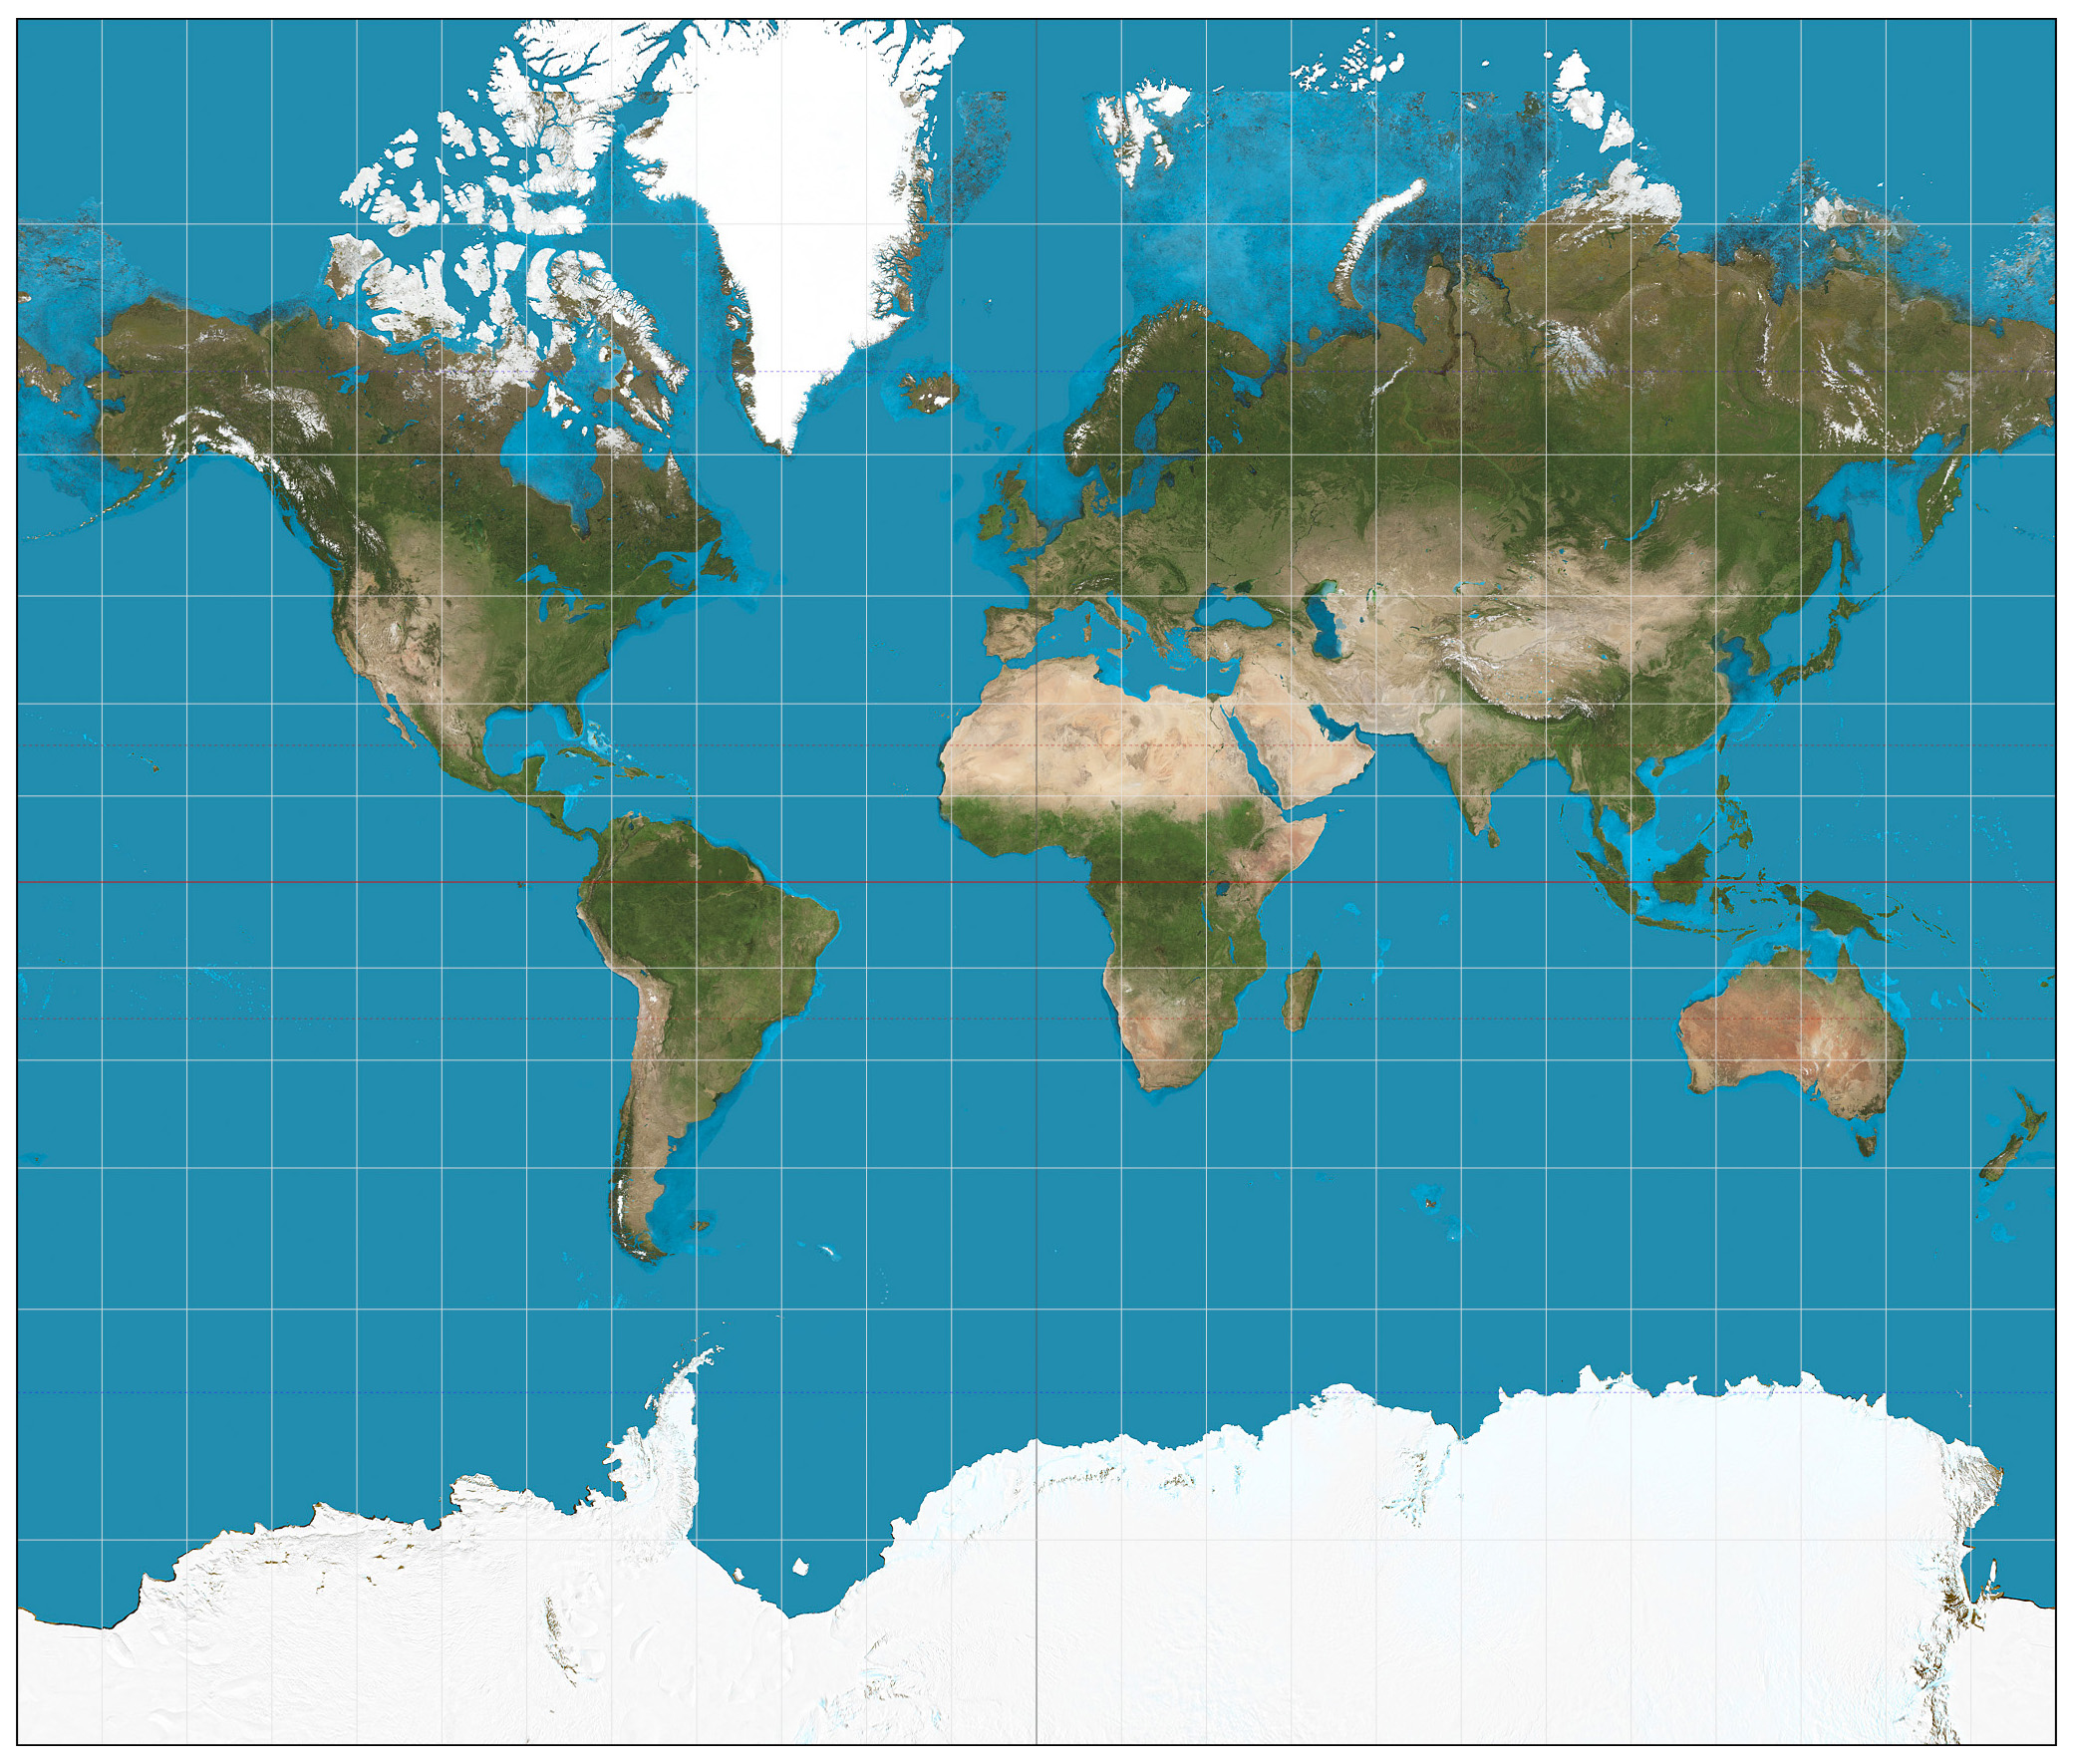 Satellite map of the world world mapsland maps of the world satellite map of the world gumiabroncs Image collections